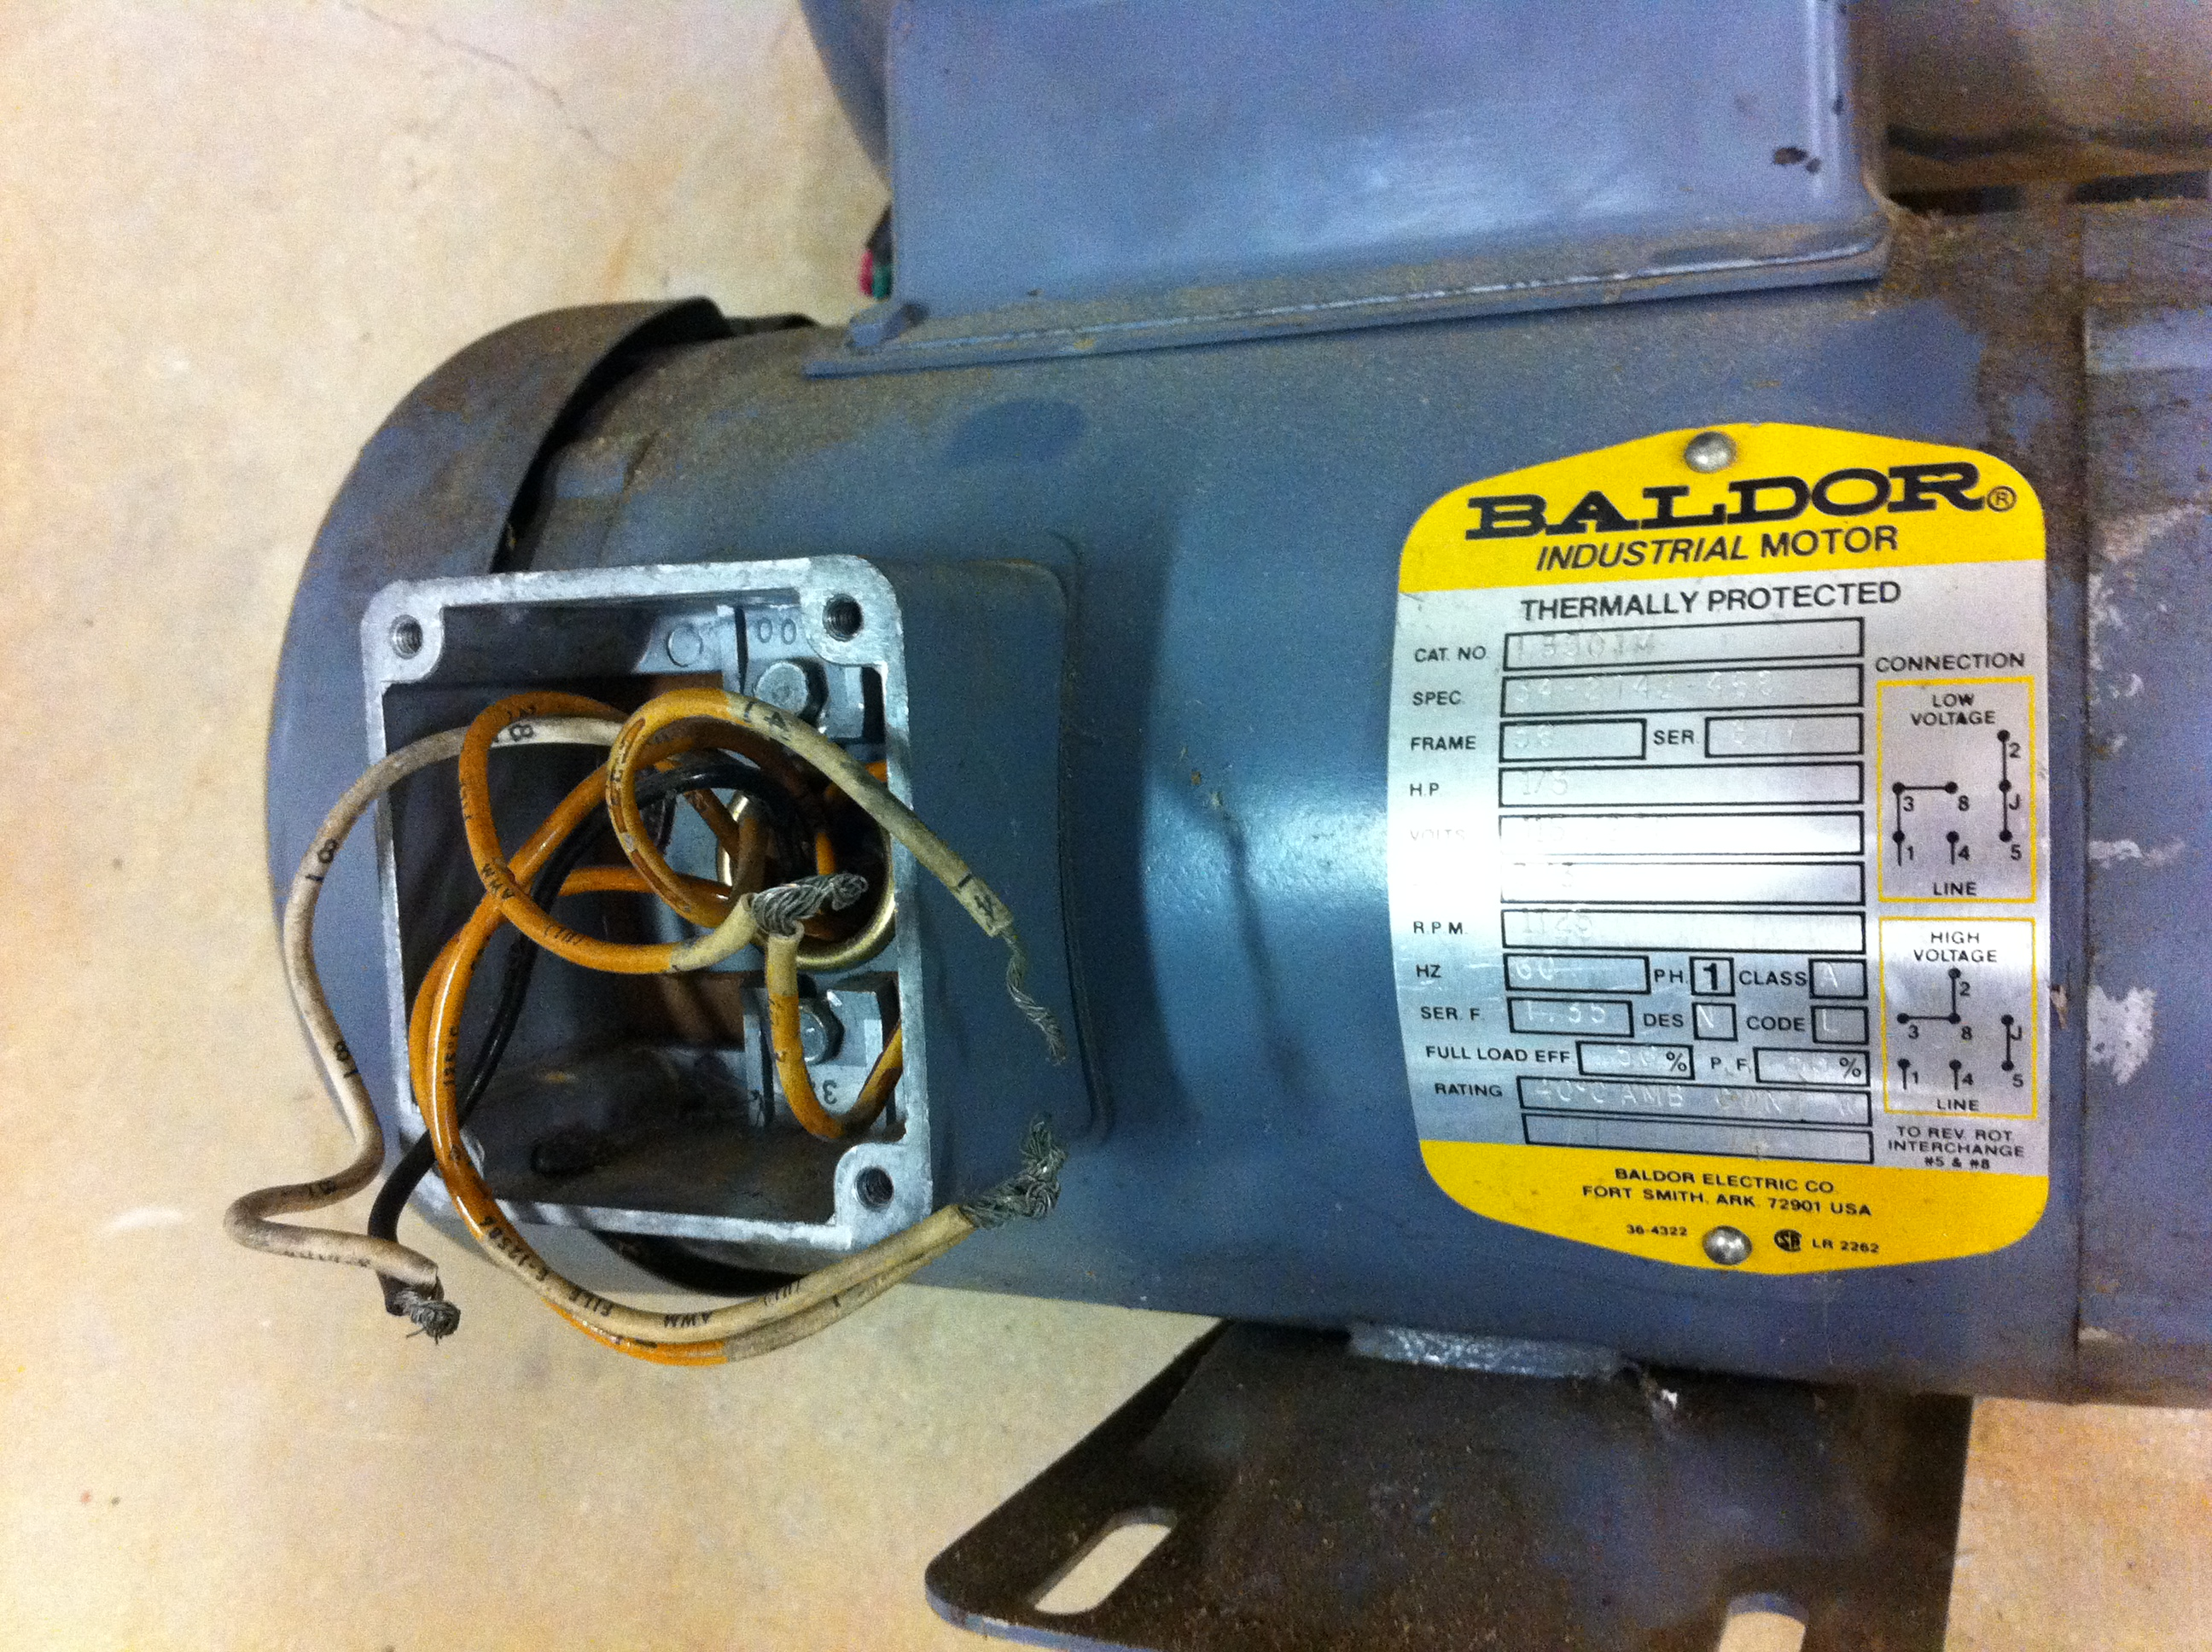 help wiring baldor motor - the garage journal board,Wiring diagram,Wiring Diagram For Baldor Electric Motor